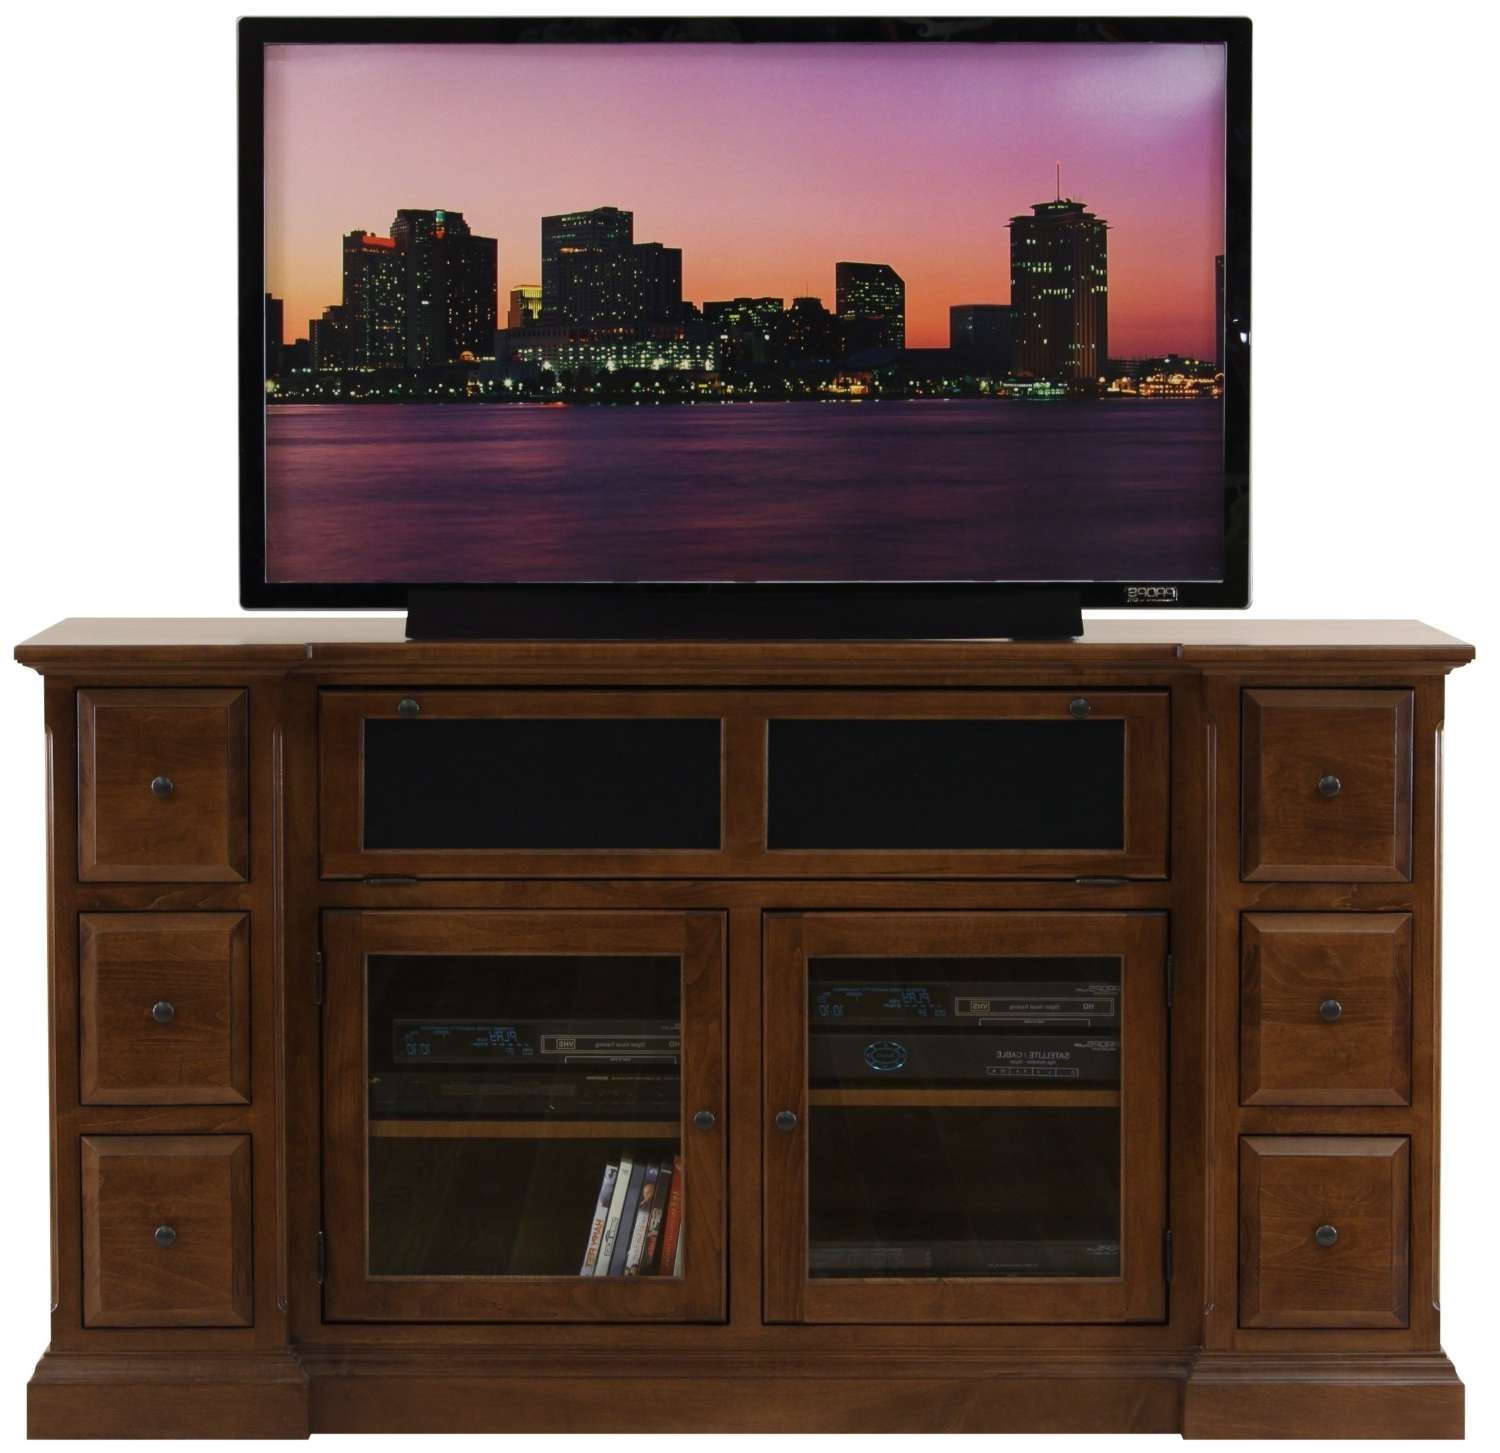 Fresh Denver Cherry Wood Tv Stand Walmart #17102 In Cherry Wood Tv Stands (View 8 of 15)